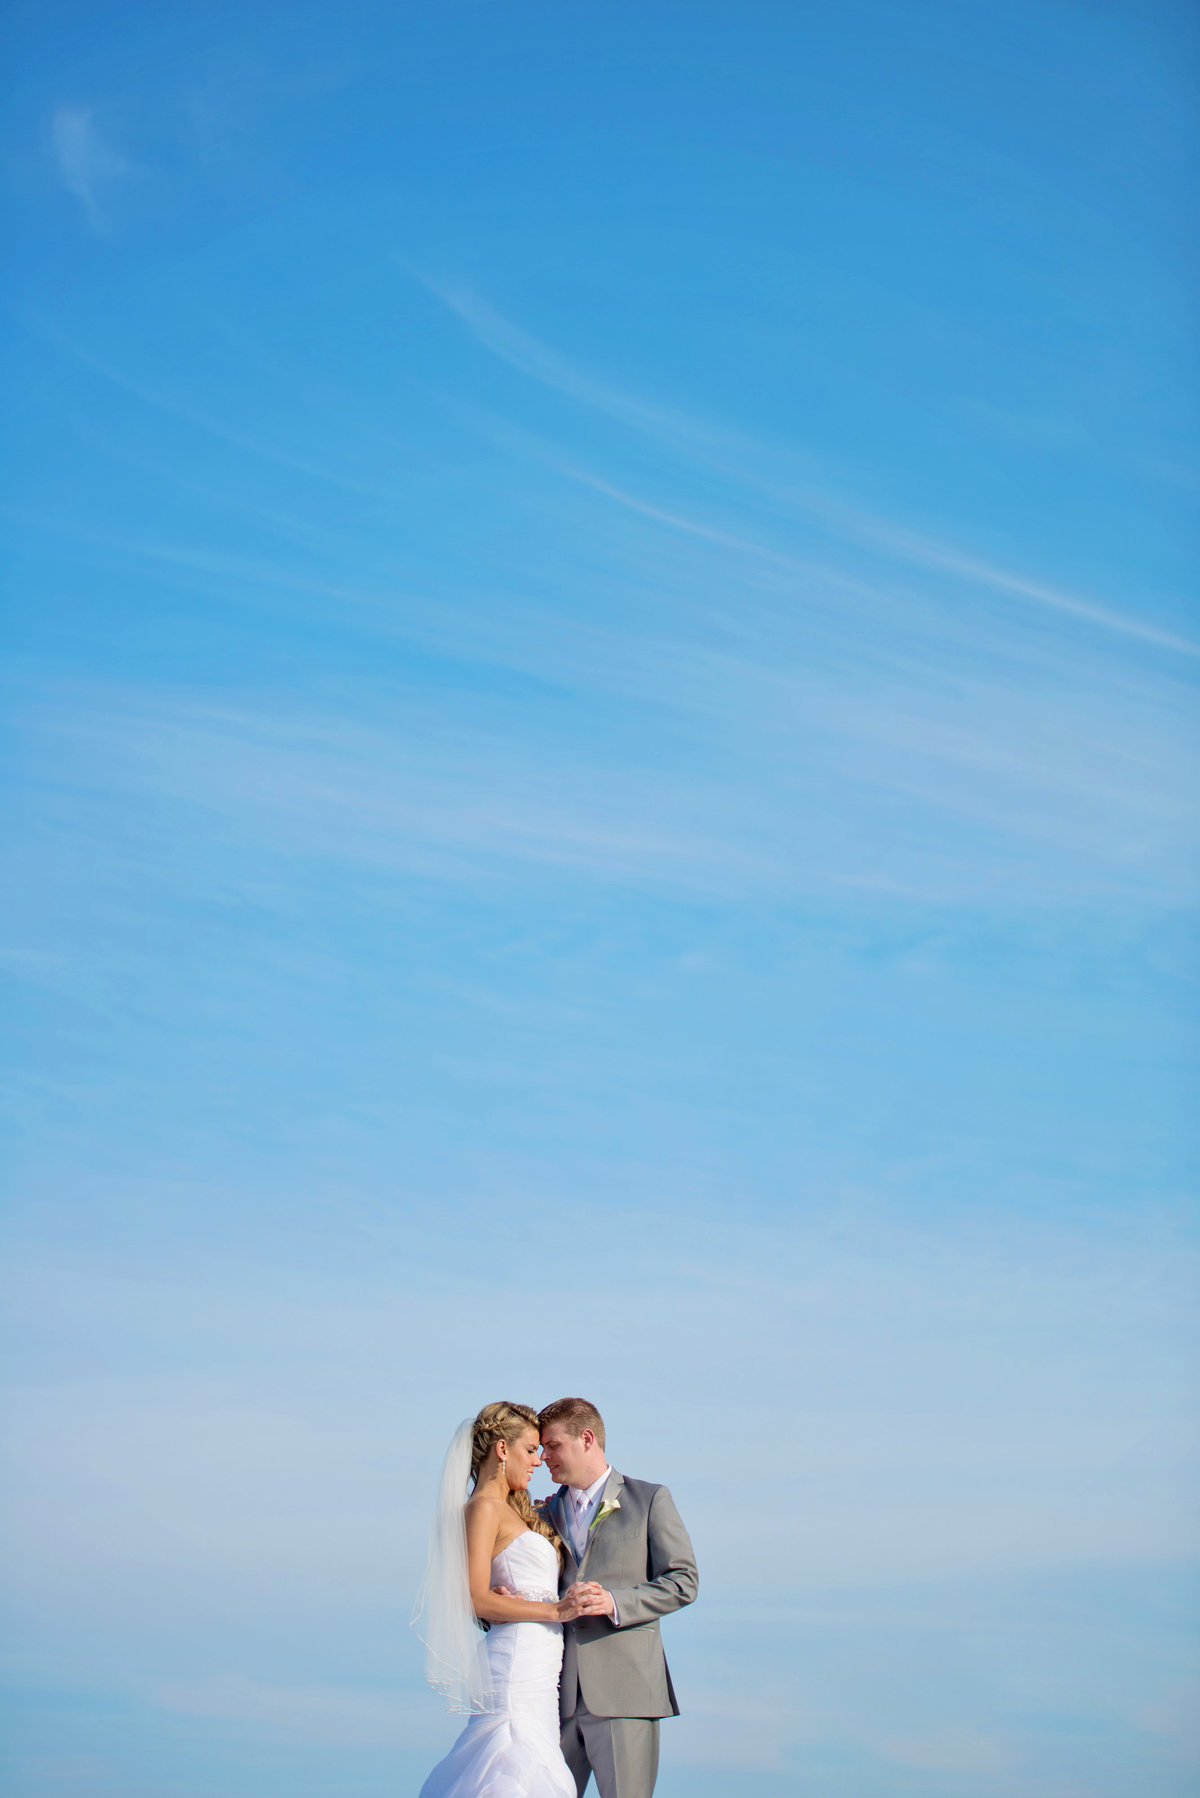 Bride and groom photo with blue skies at Oceanbleu